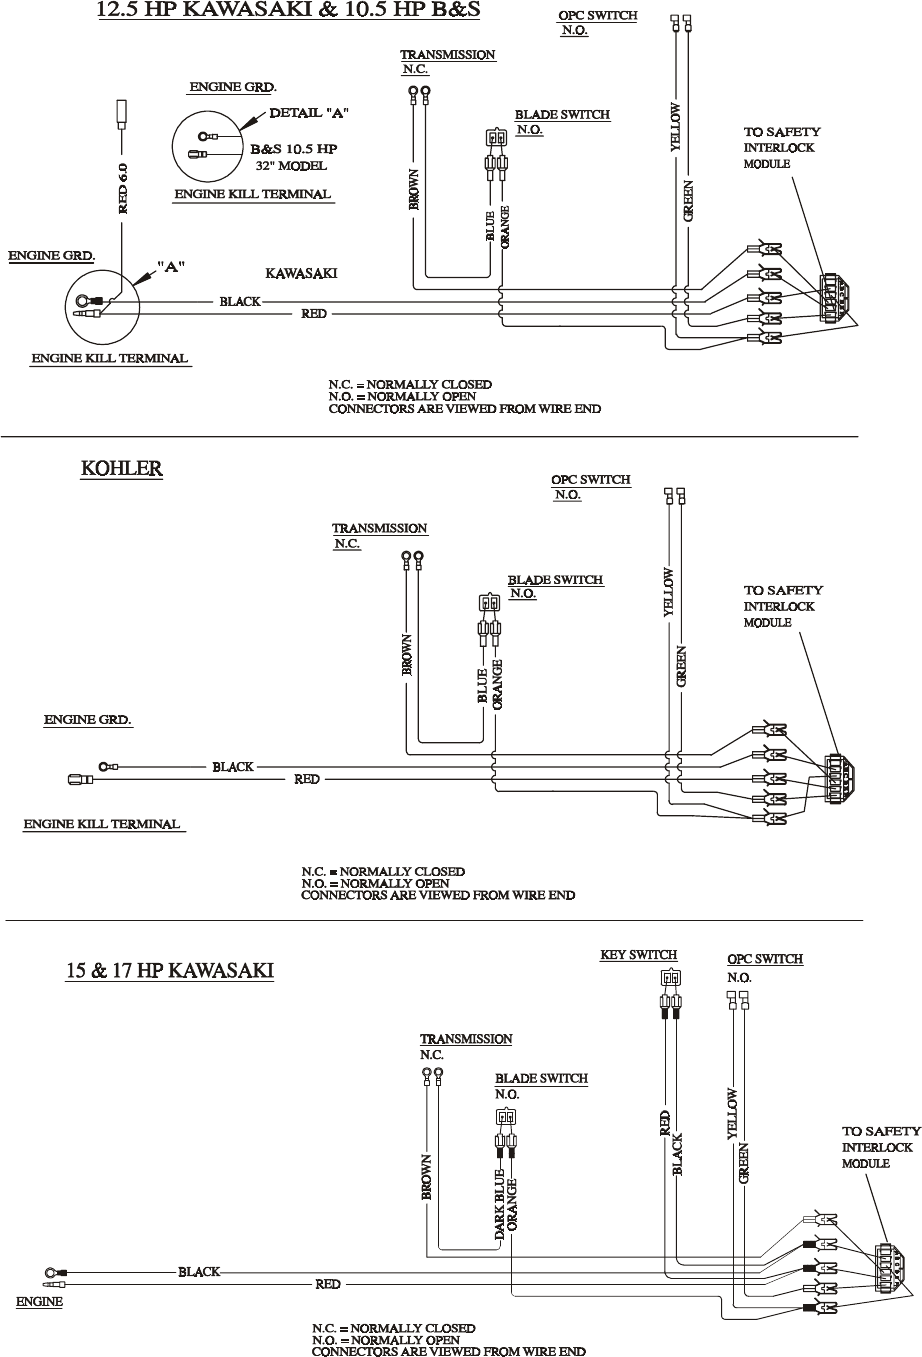 fa869892 6c99 4c24 afcd a612459af1d0 bg27 page 39 of exmark lawn mower metro user guide manualsonline com exmark wiring diagram at couponss.co